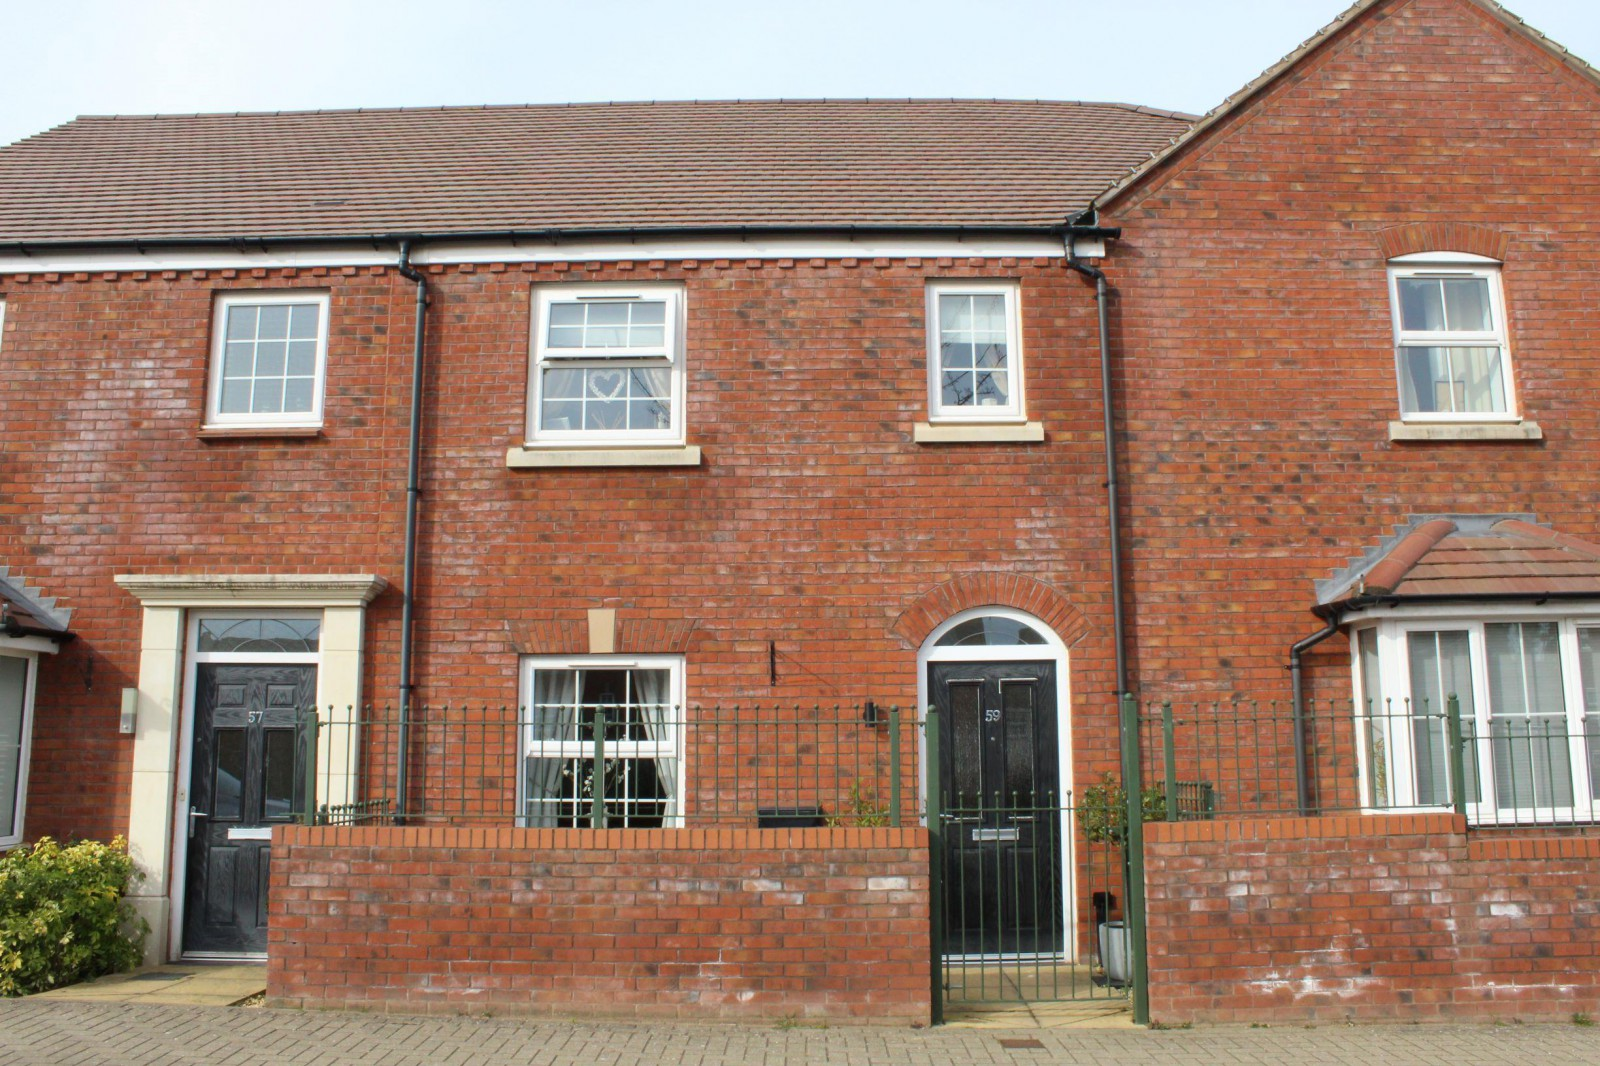 59 Red Norman Rise, Holmer, Hereford